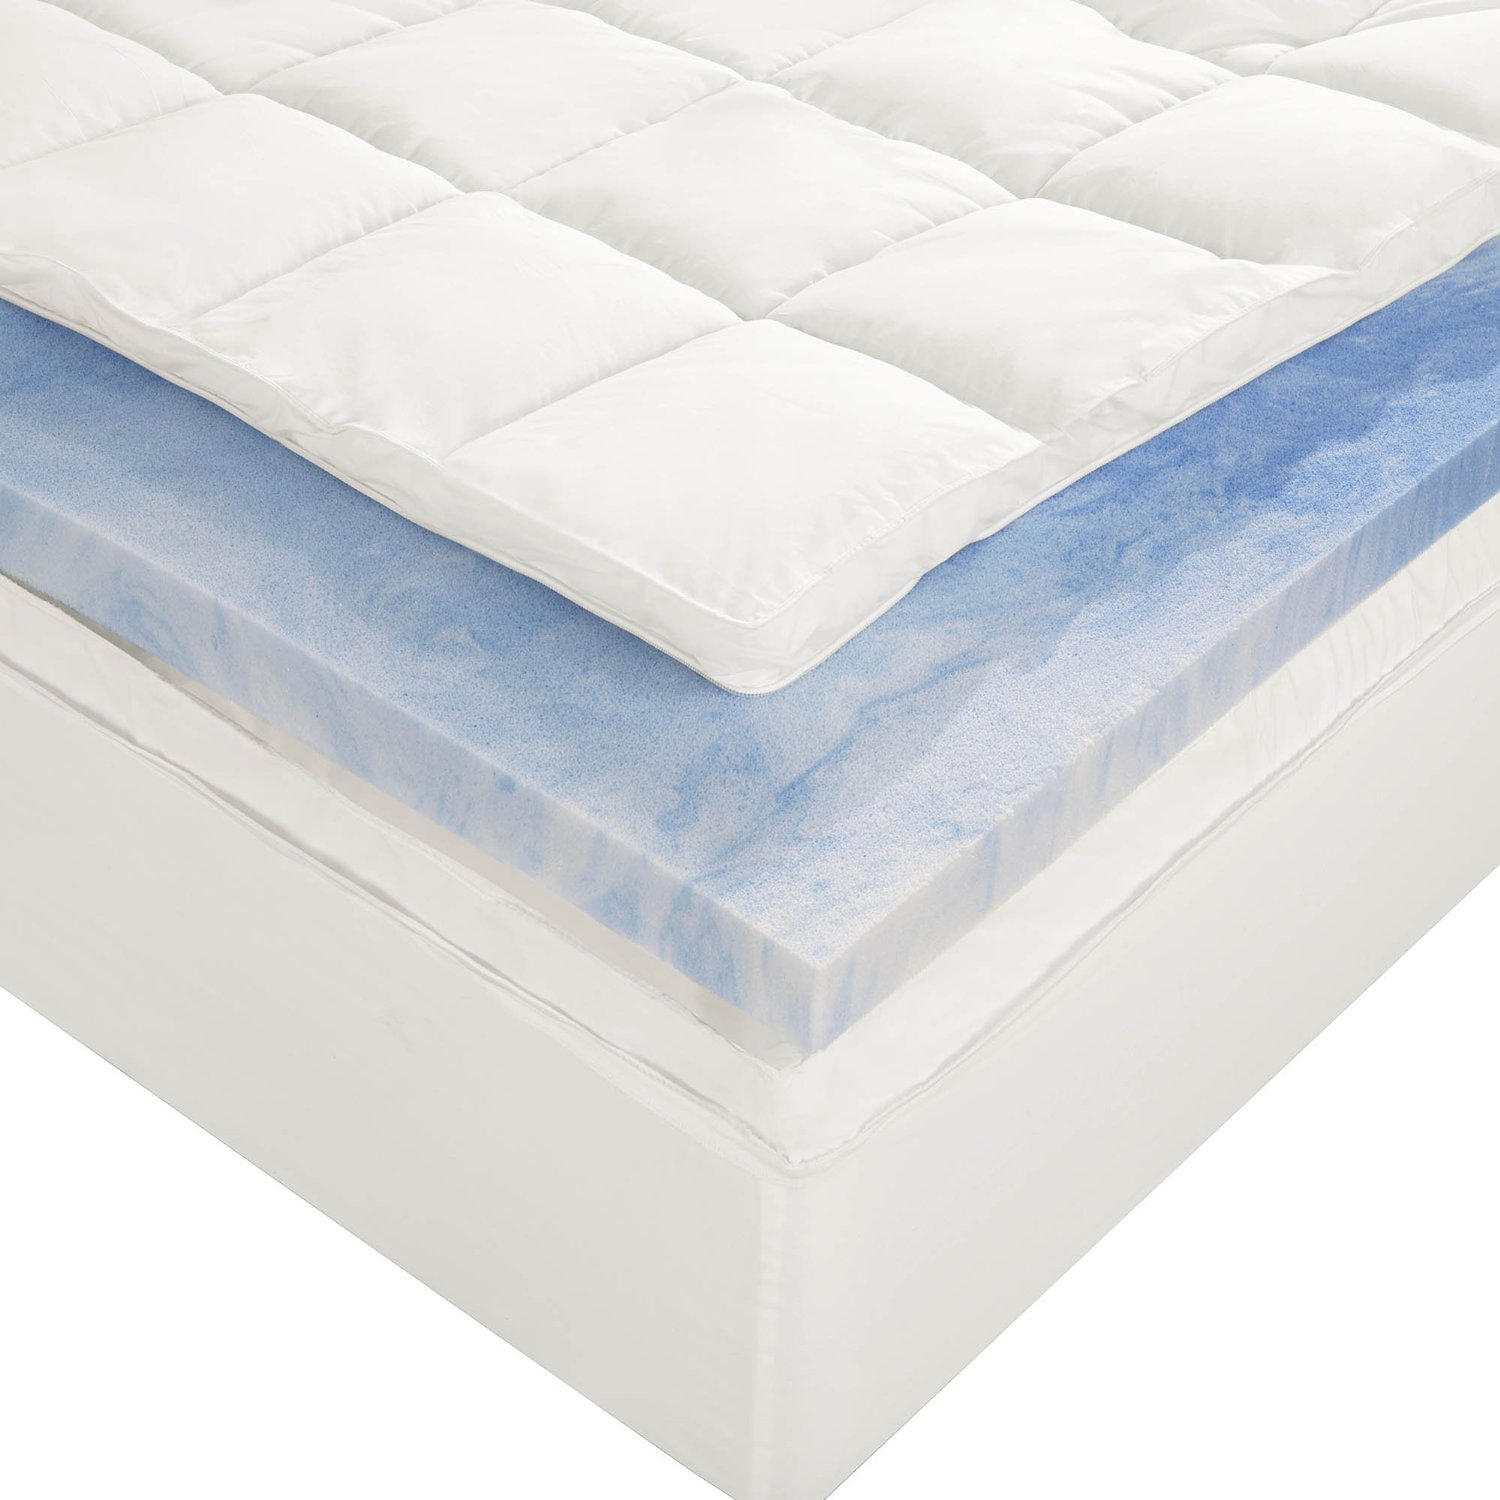 Sleep Innovations 4-Inch Dual Layer Mattress Topper - Gel Memory Foam and  Plush Fiber. 10-year limited warranty. Queen Size: $181.15, Amazon